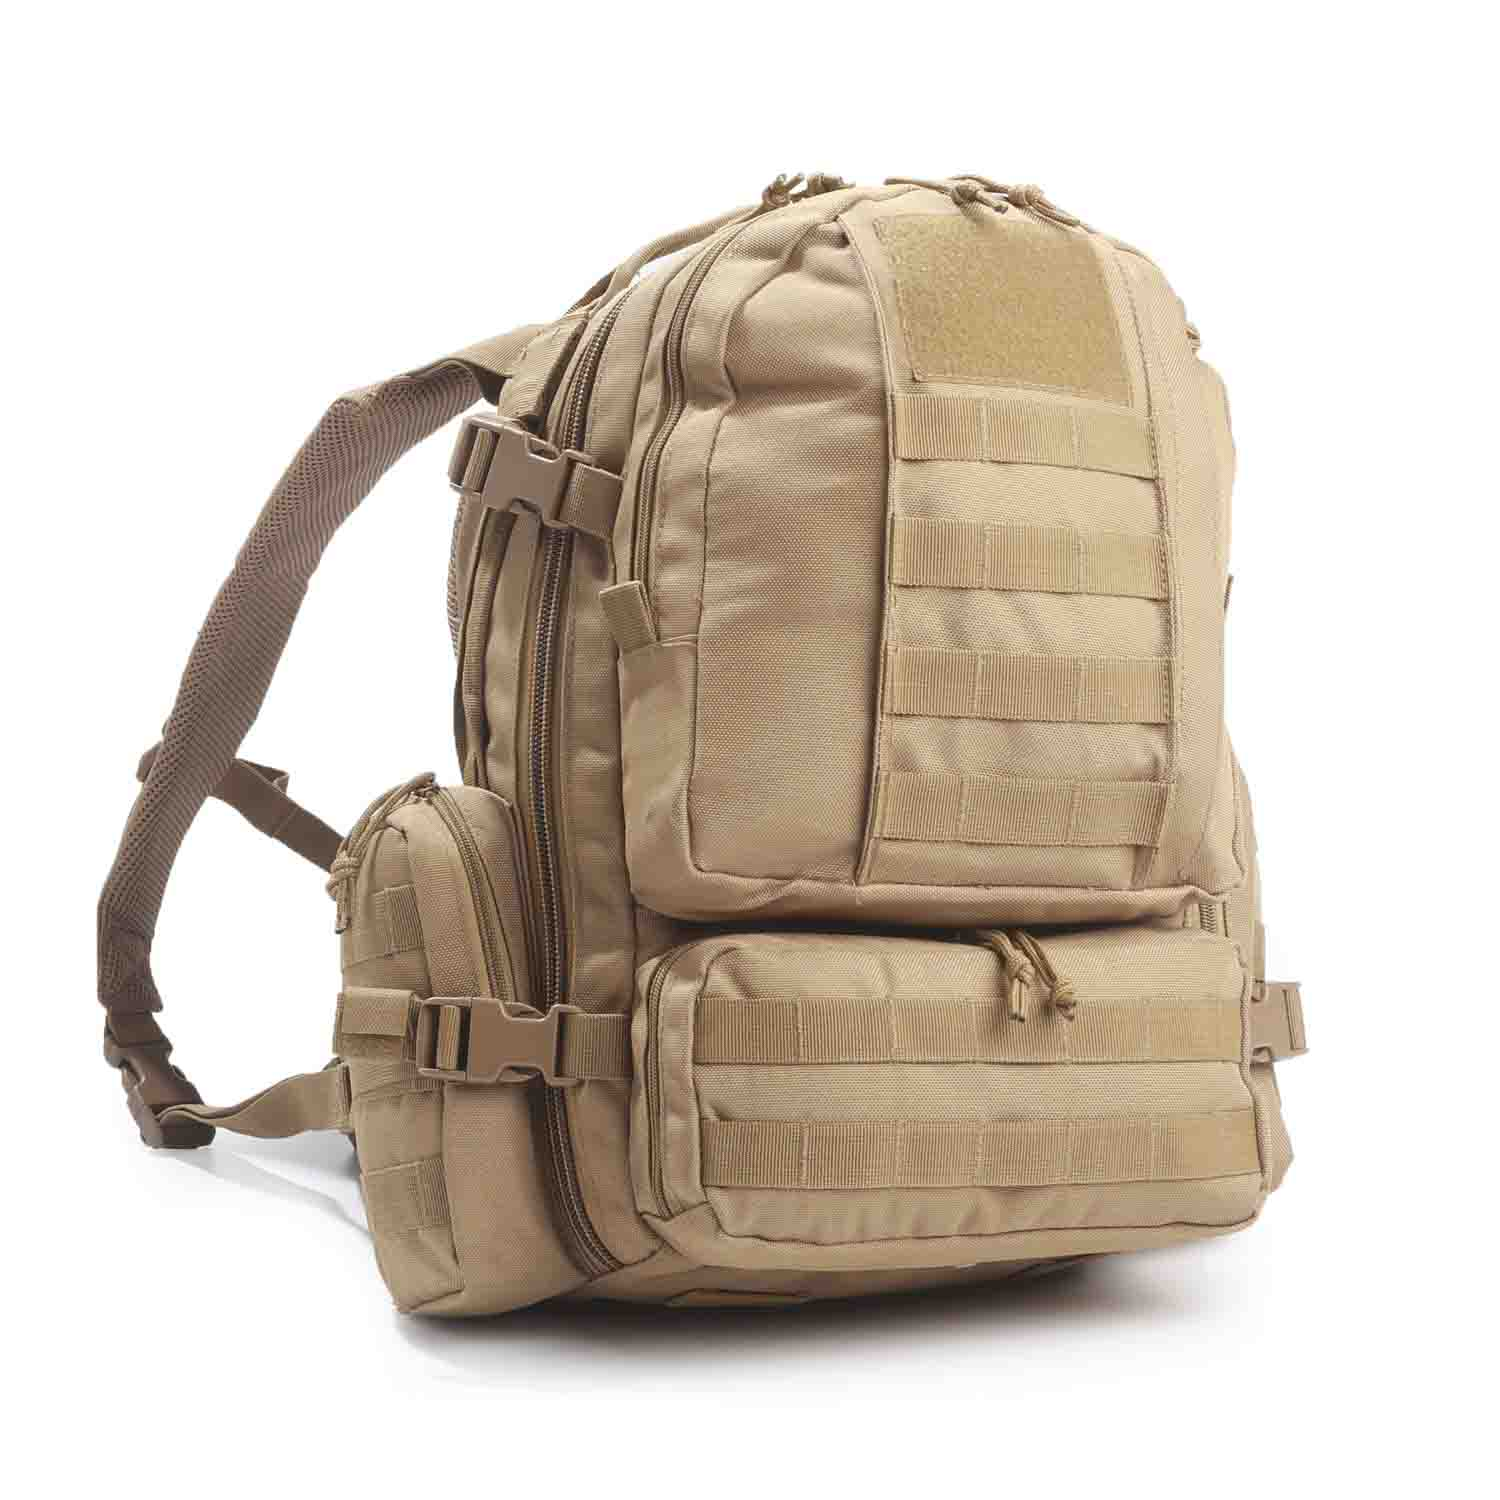 5ive Star Gear UTD-5S Urban Tactical Day Pack